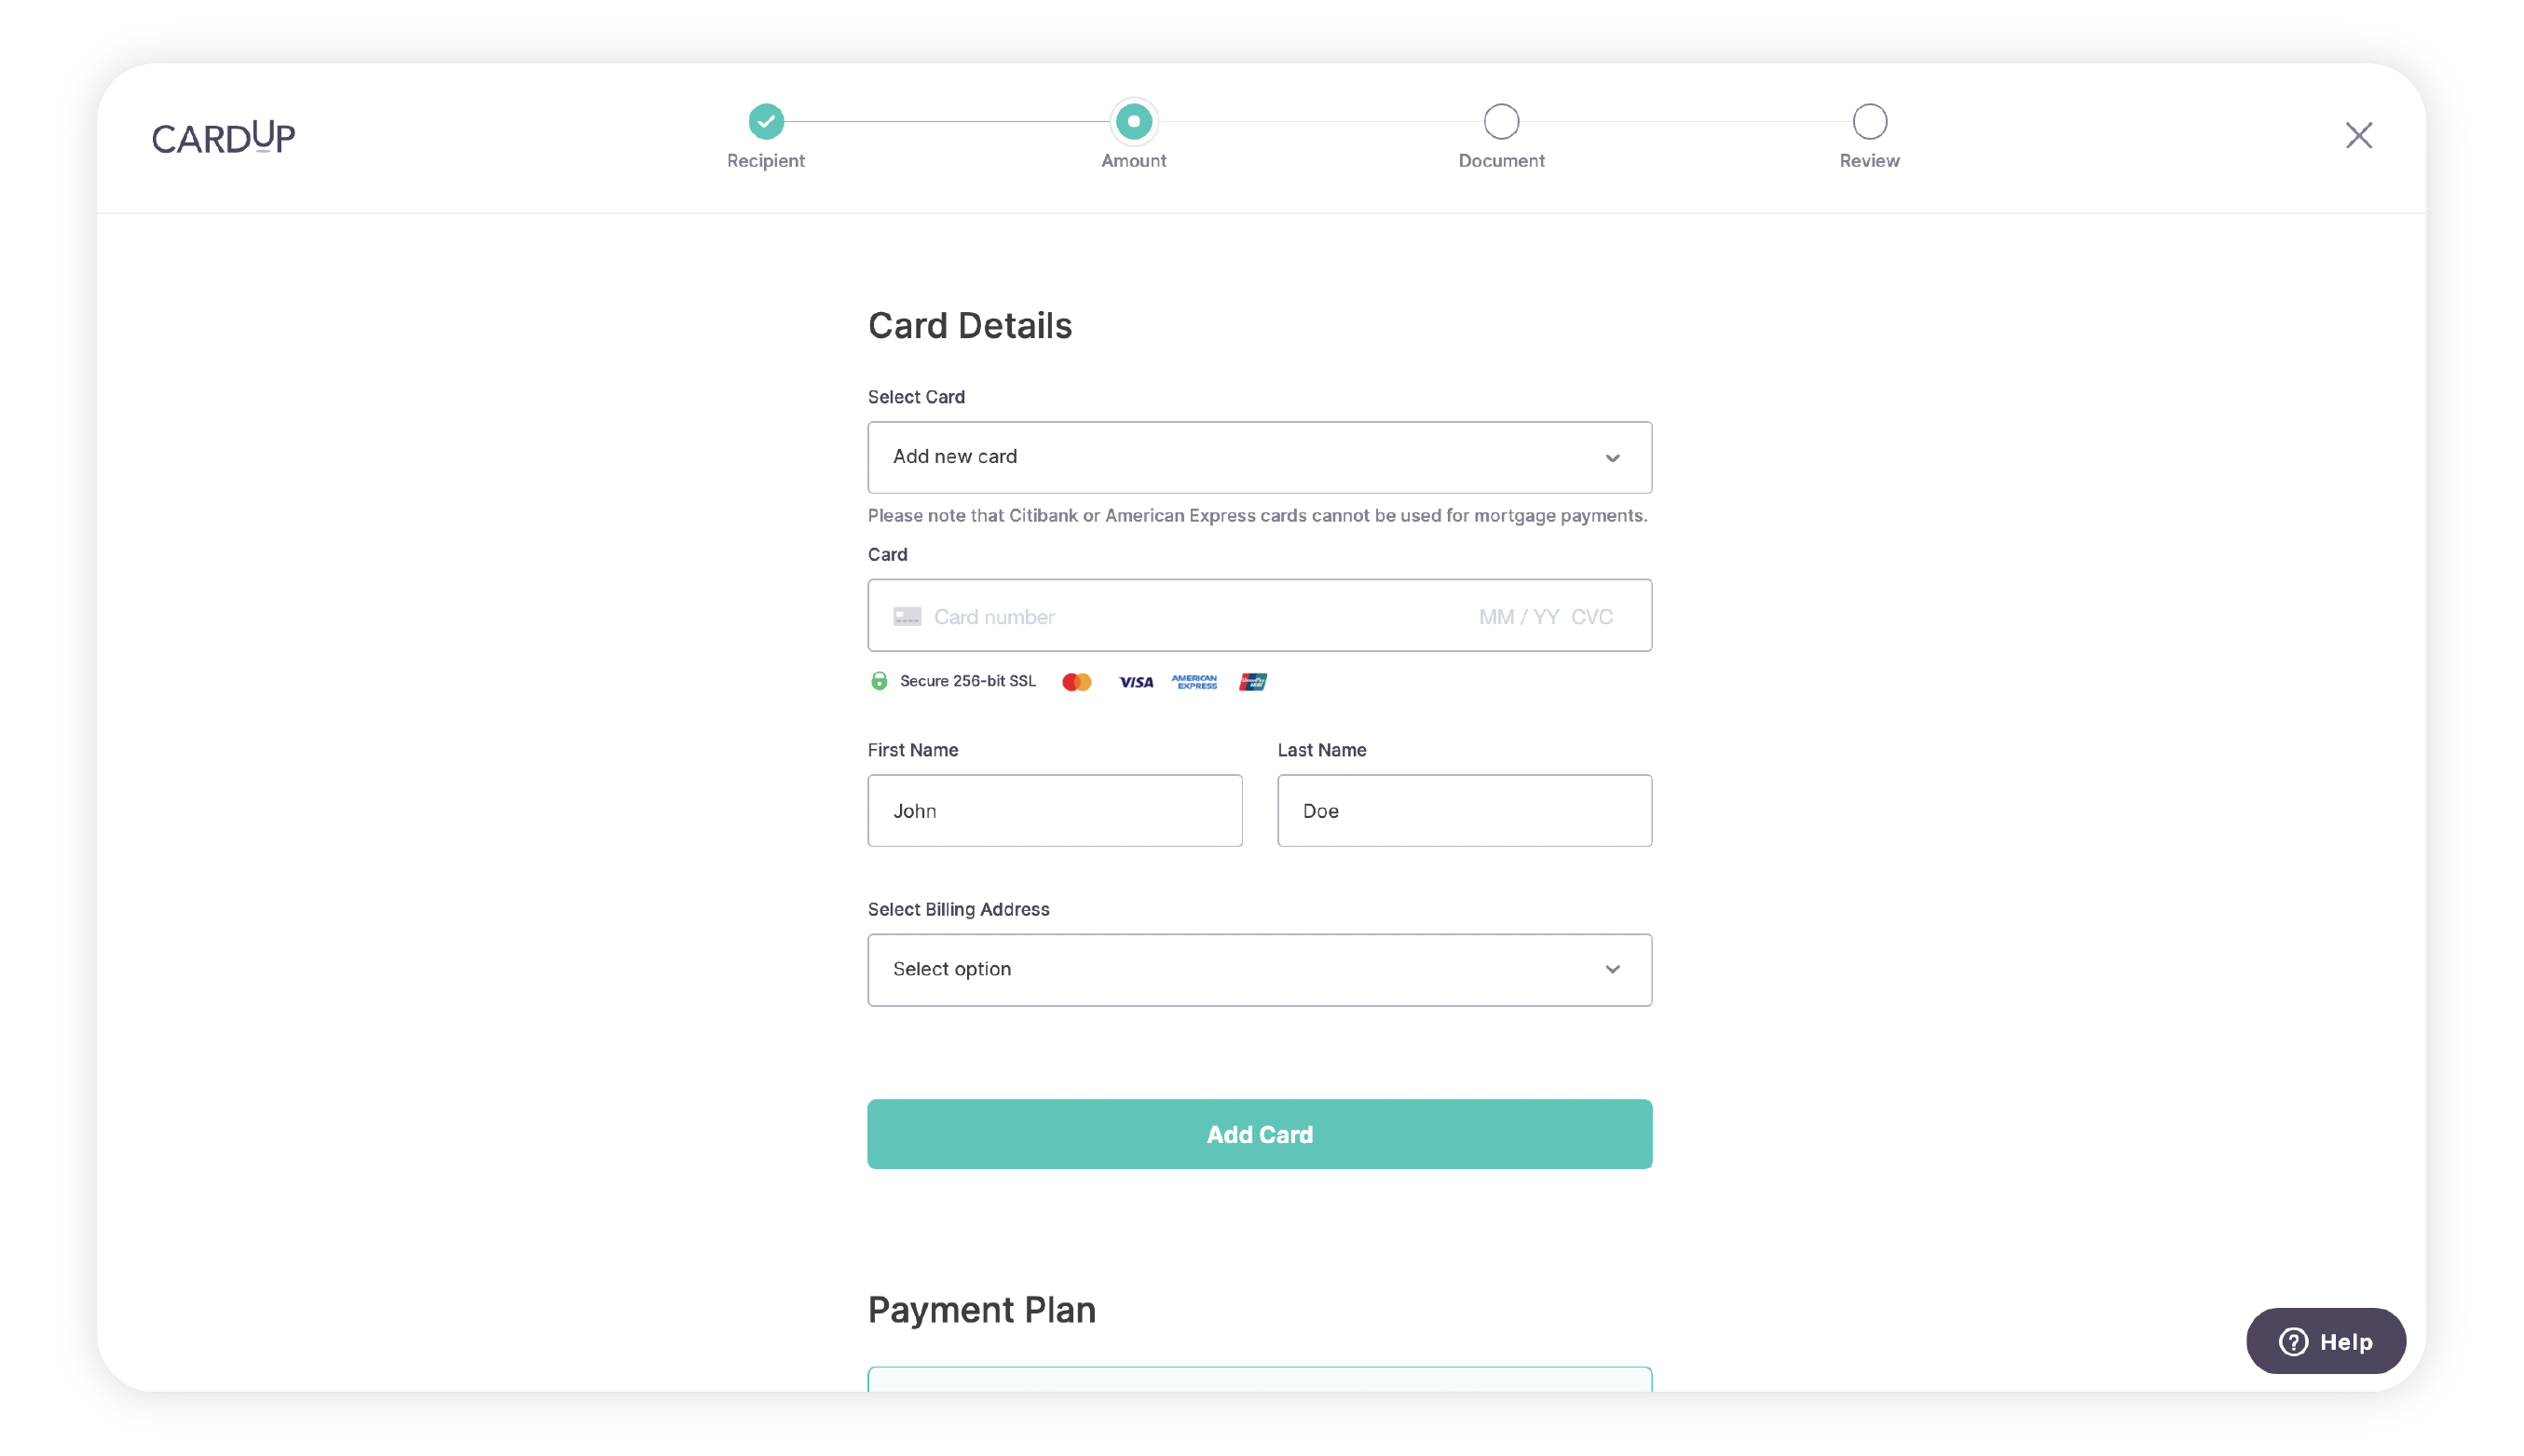 Select or add a new credit card